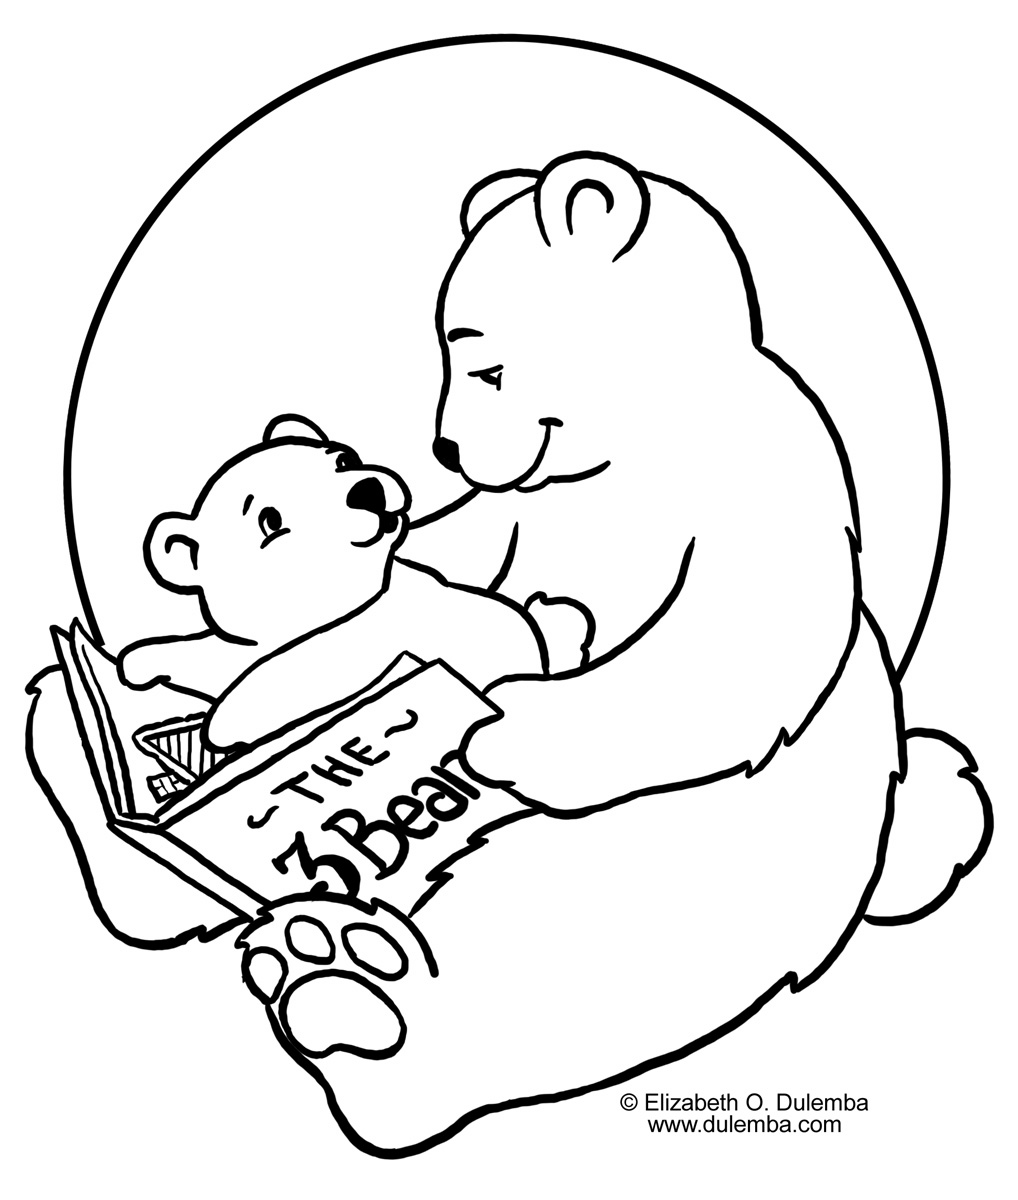 Coloring & Activity Pages: Storytime Bears Coloring Page